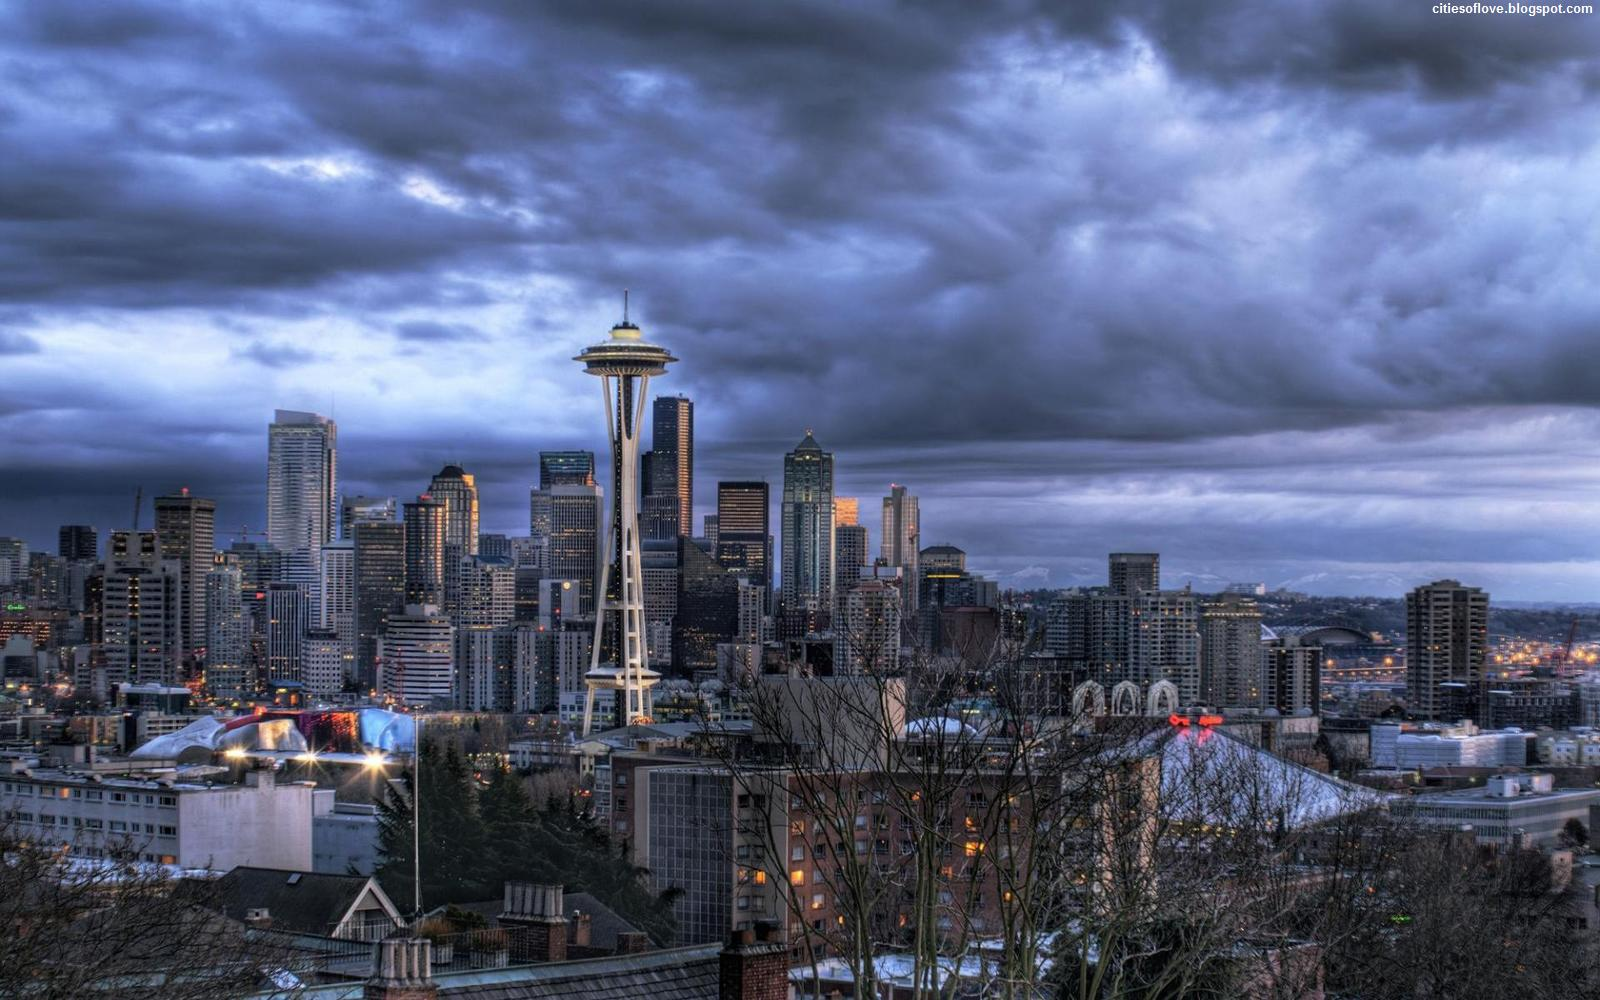 http://2.bp.blogspot.com/-MOxdGepntQA/UGRek2UQXKI/AAAAAAAAH24/1awT80MASN8/s1600/Seattle_Storm_Wonderful_Fantastic_City_United_States_America_USA_Hd_Desktop_Wallpaper_citiesoflove.blogspot.com.jpg